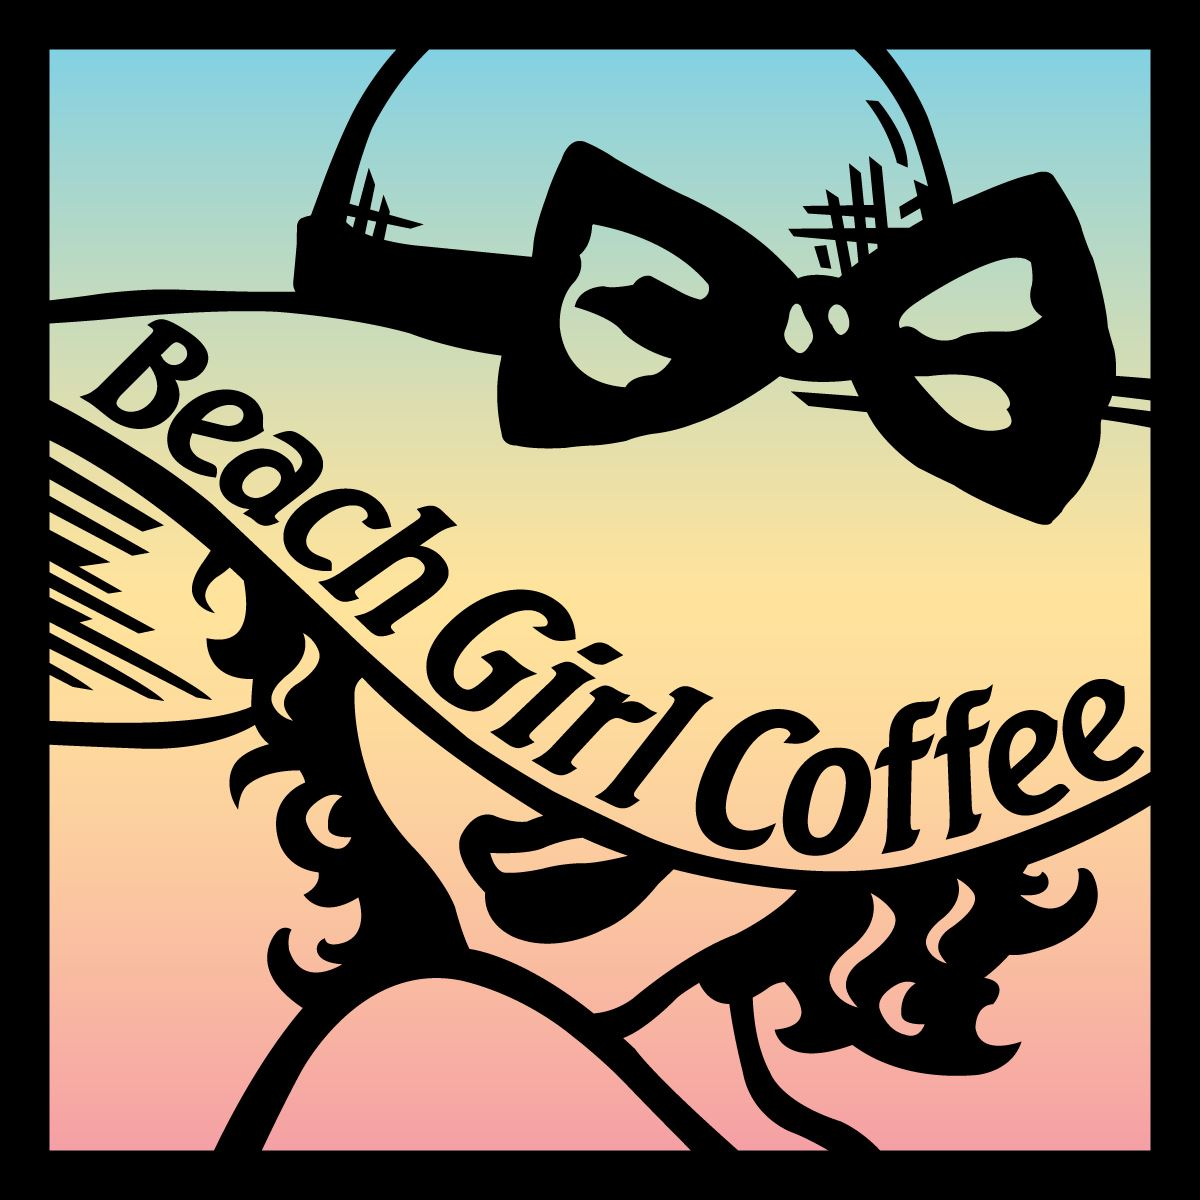 Beach Girl Coffee